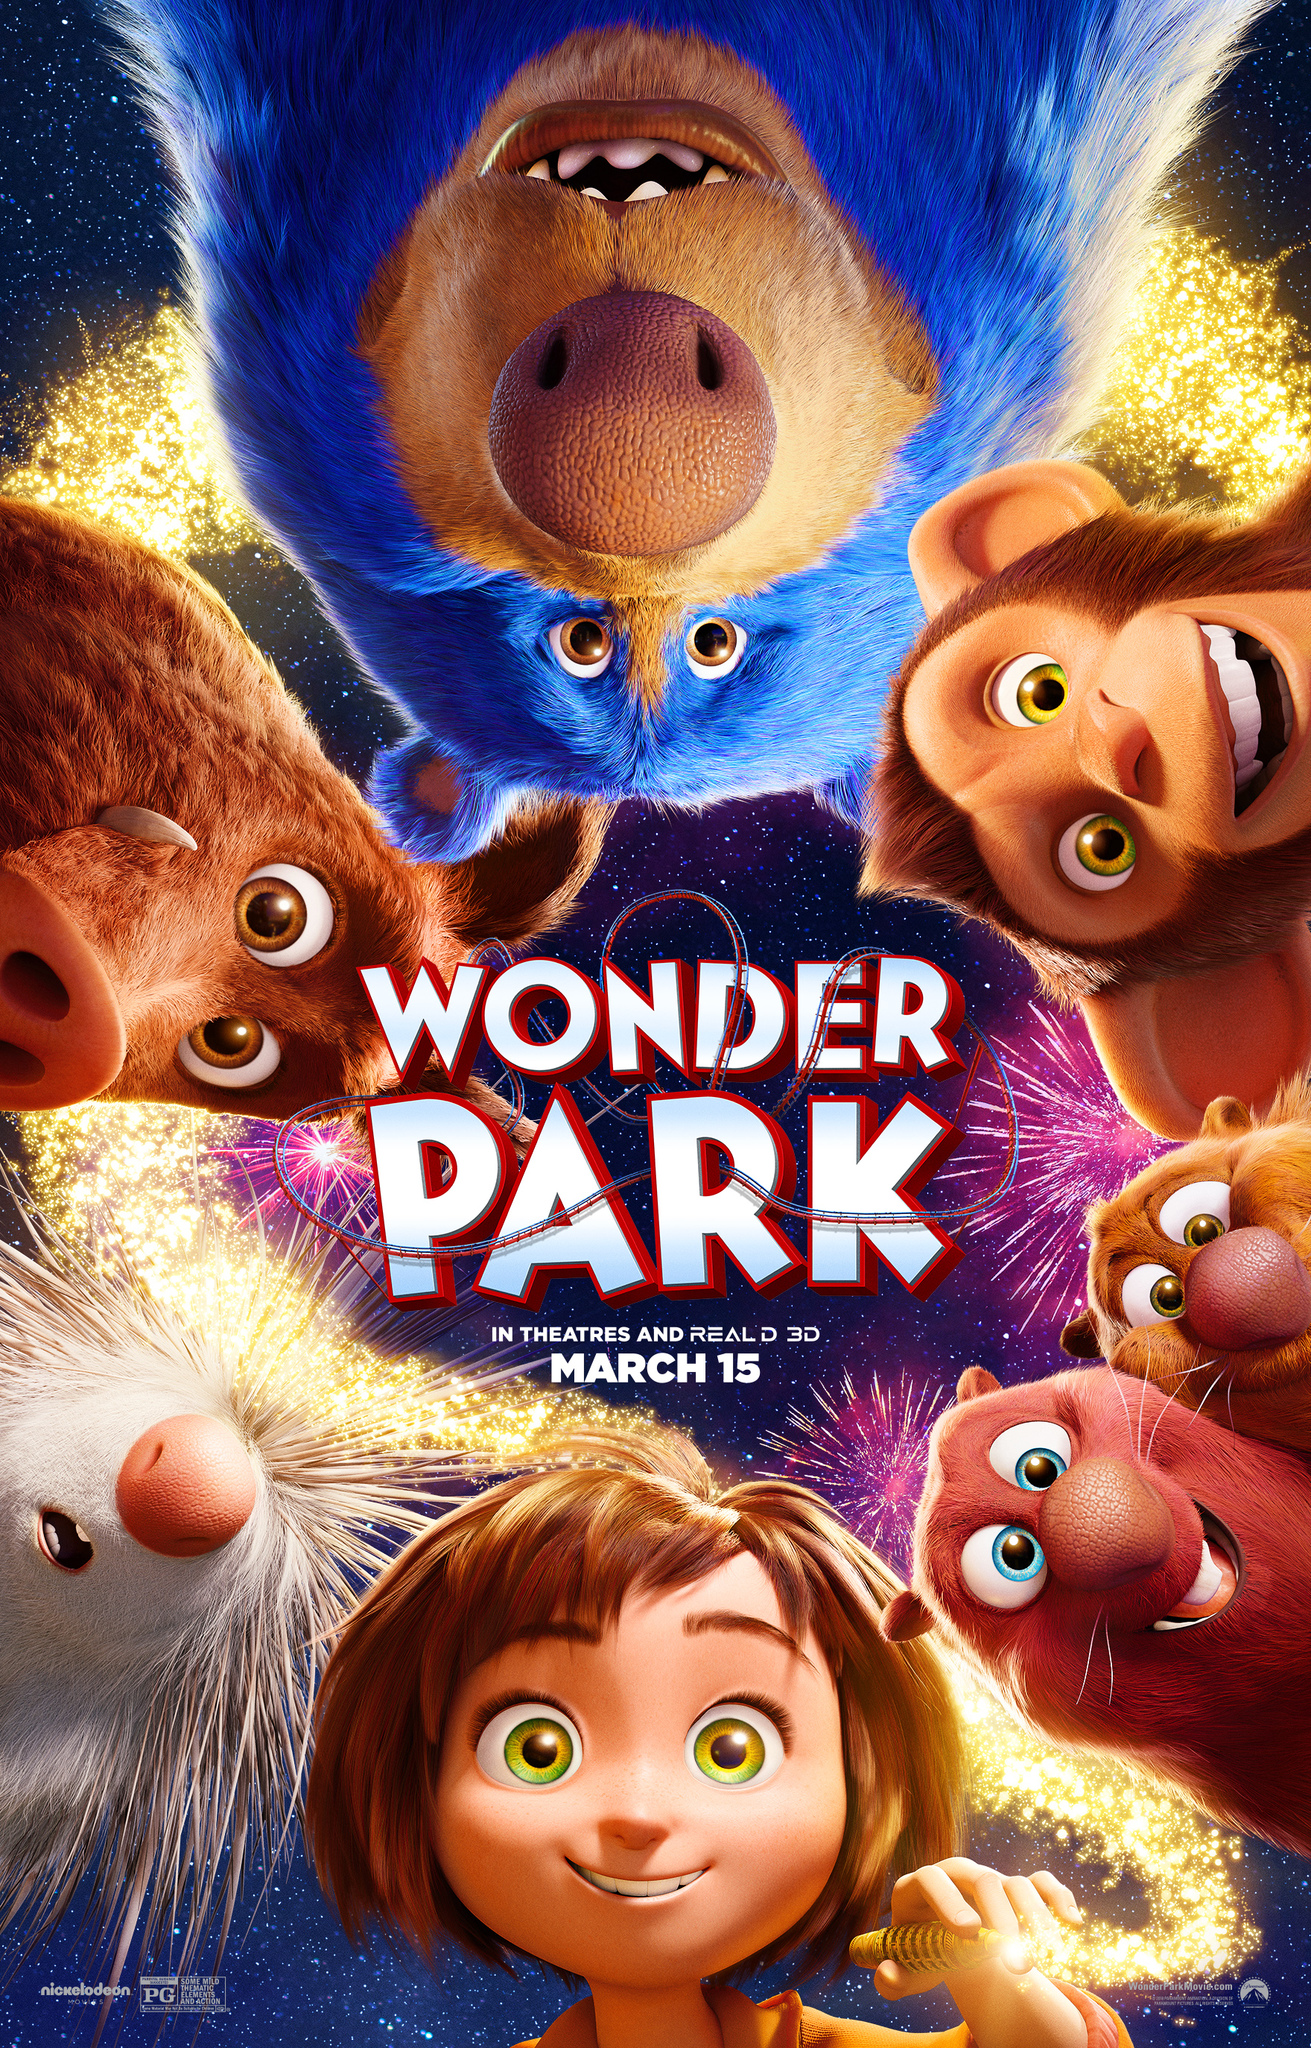 Wonder-Park-3D-movie-3-D.jpeg